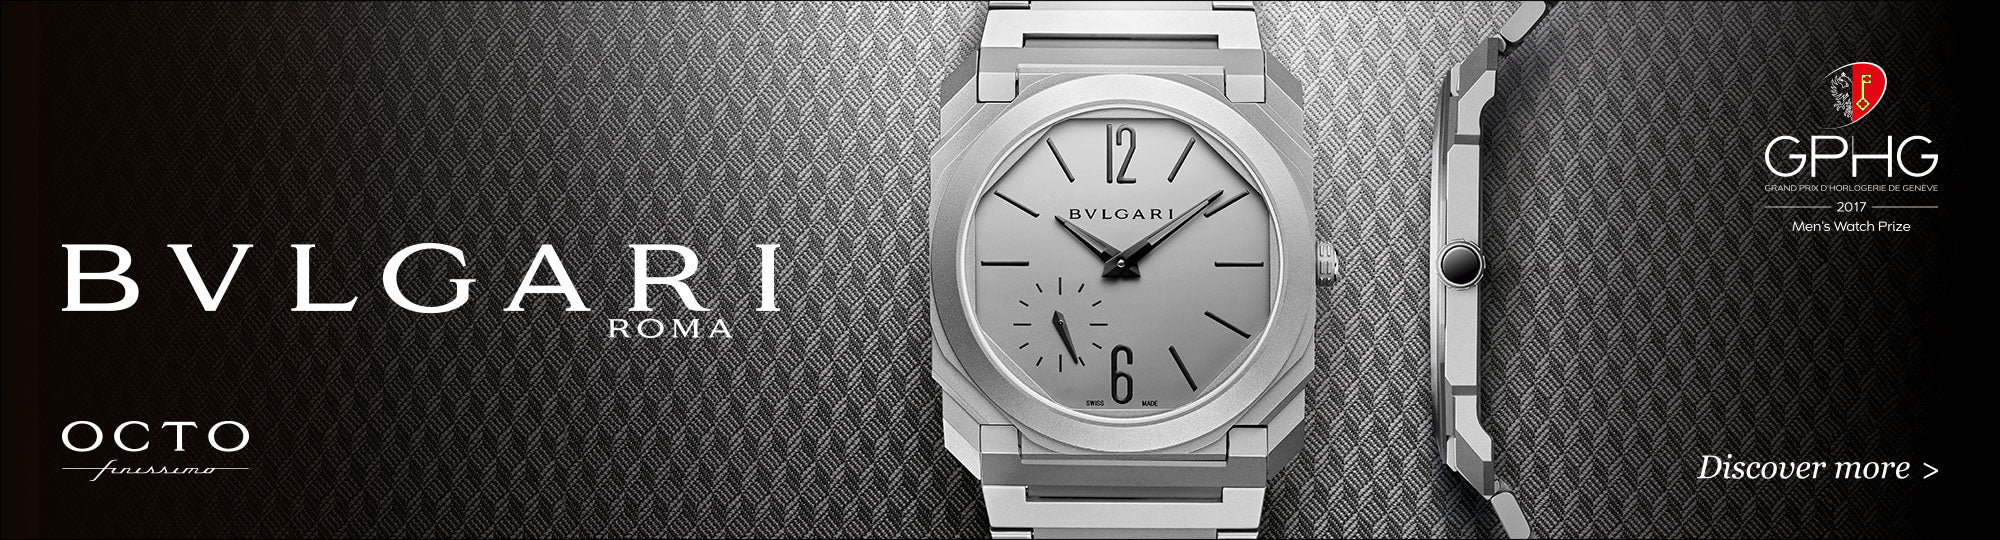 Bulgari watches Manfredi